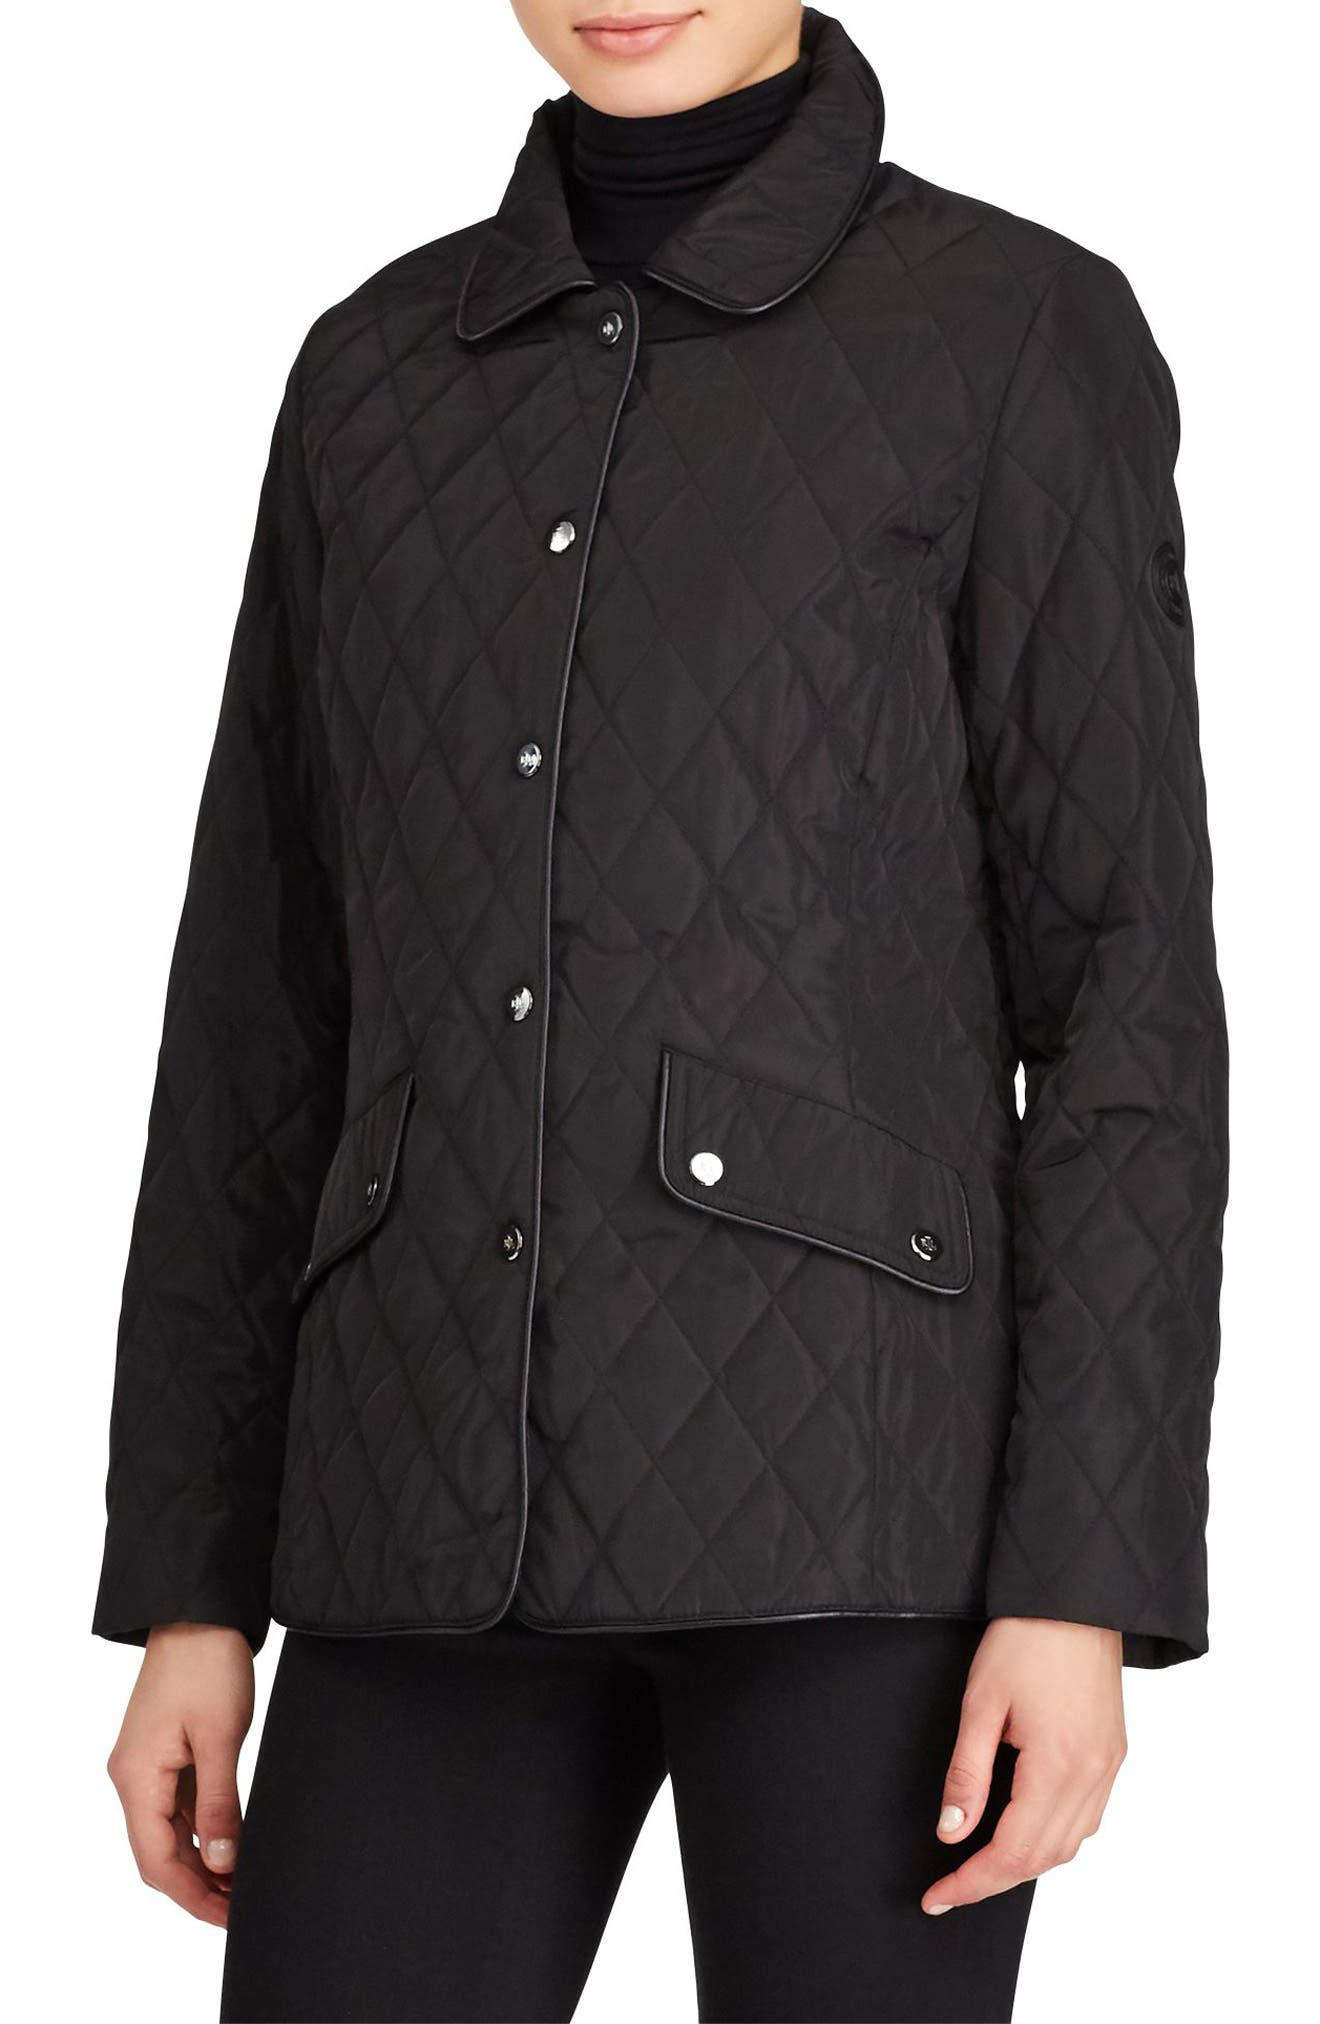 Alternate Image 1 Selected - Lauren Ralph Lauren Faux Leather Trim Quilted Jacket (Regular & Petite)